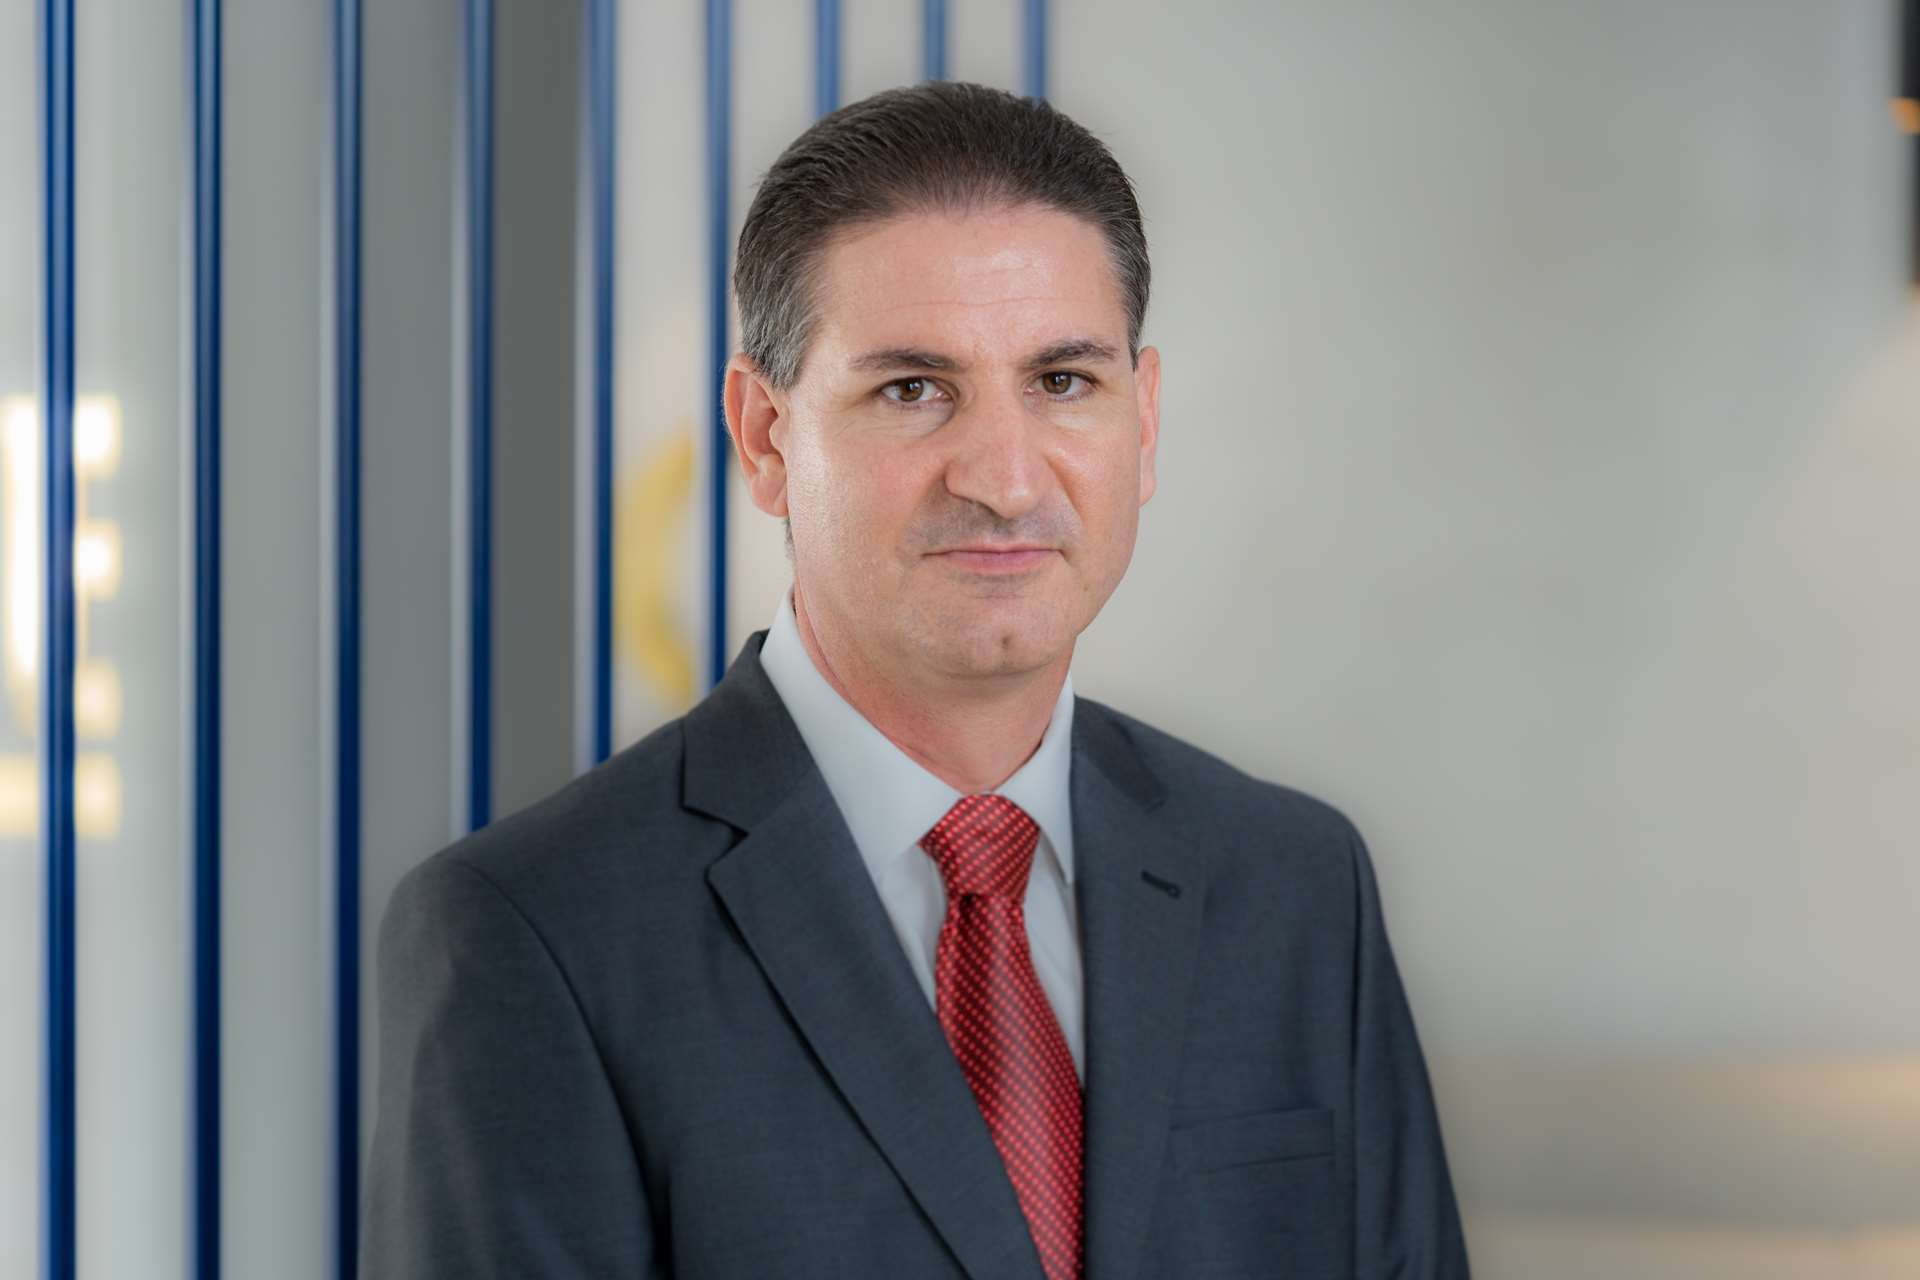 David Vella Gera, Tax Manager